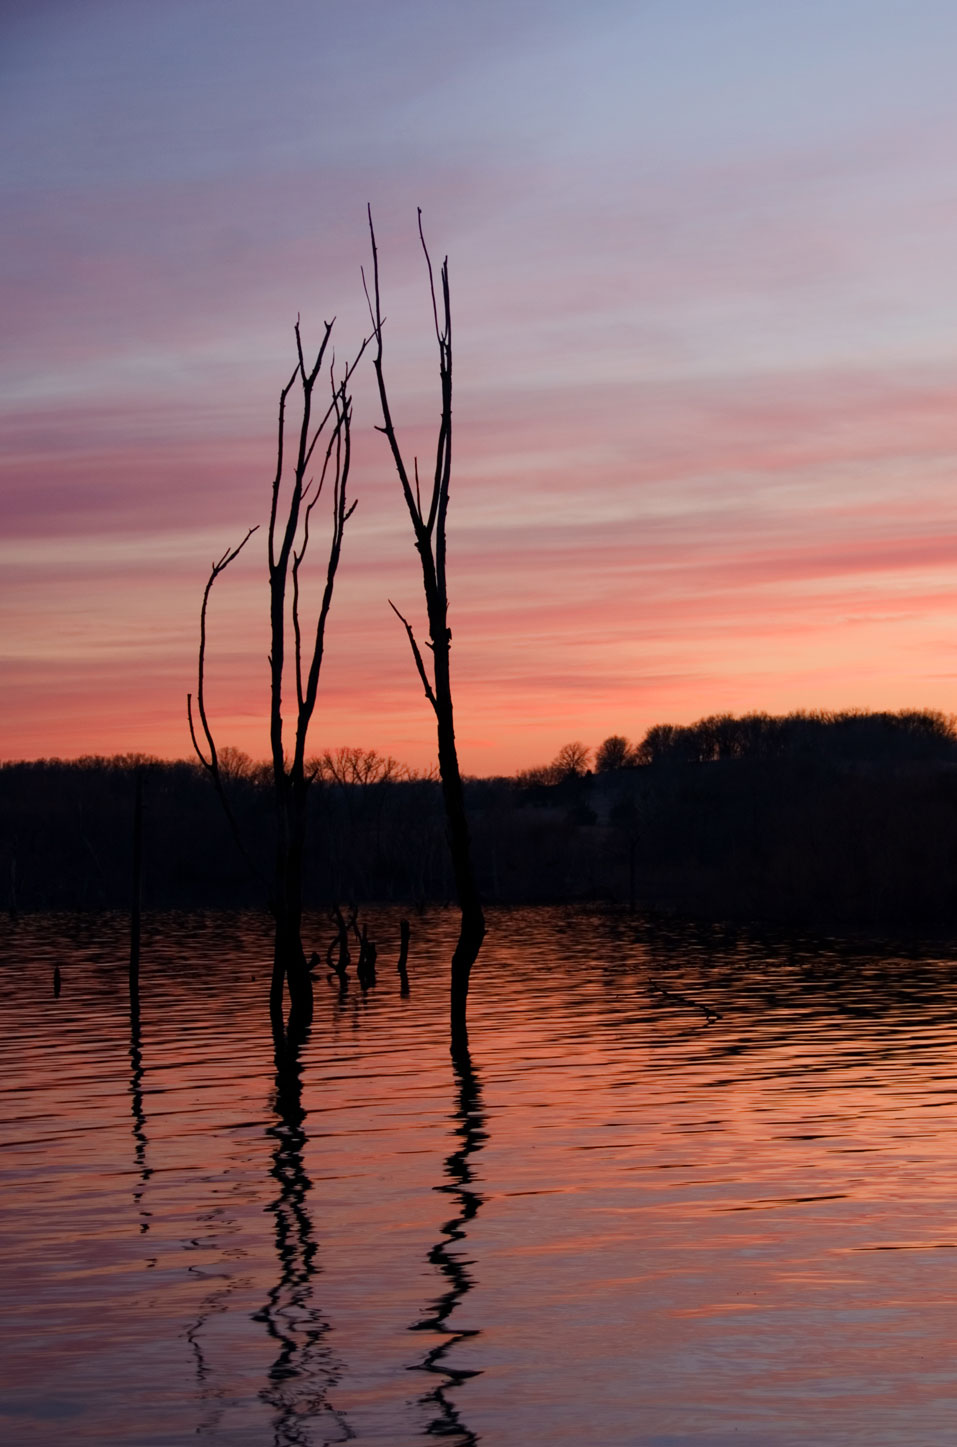 USA-two-thin-trees-at-sunse.jpg